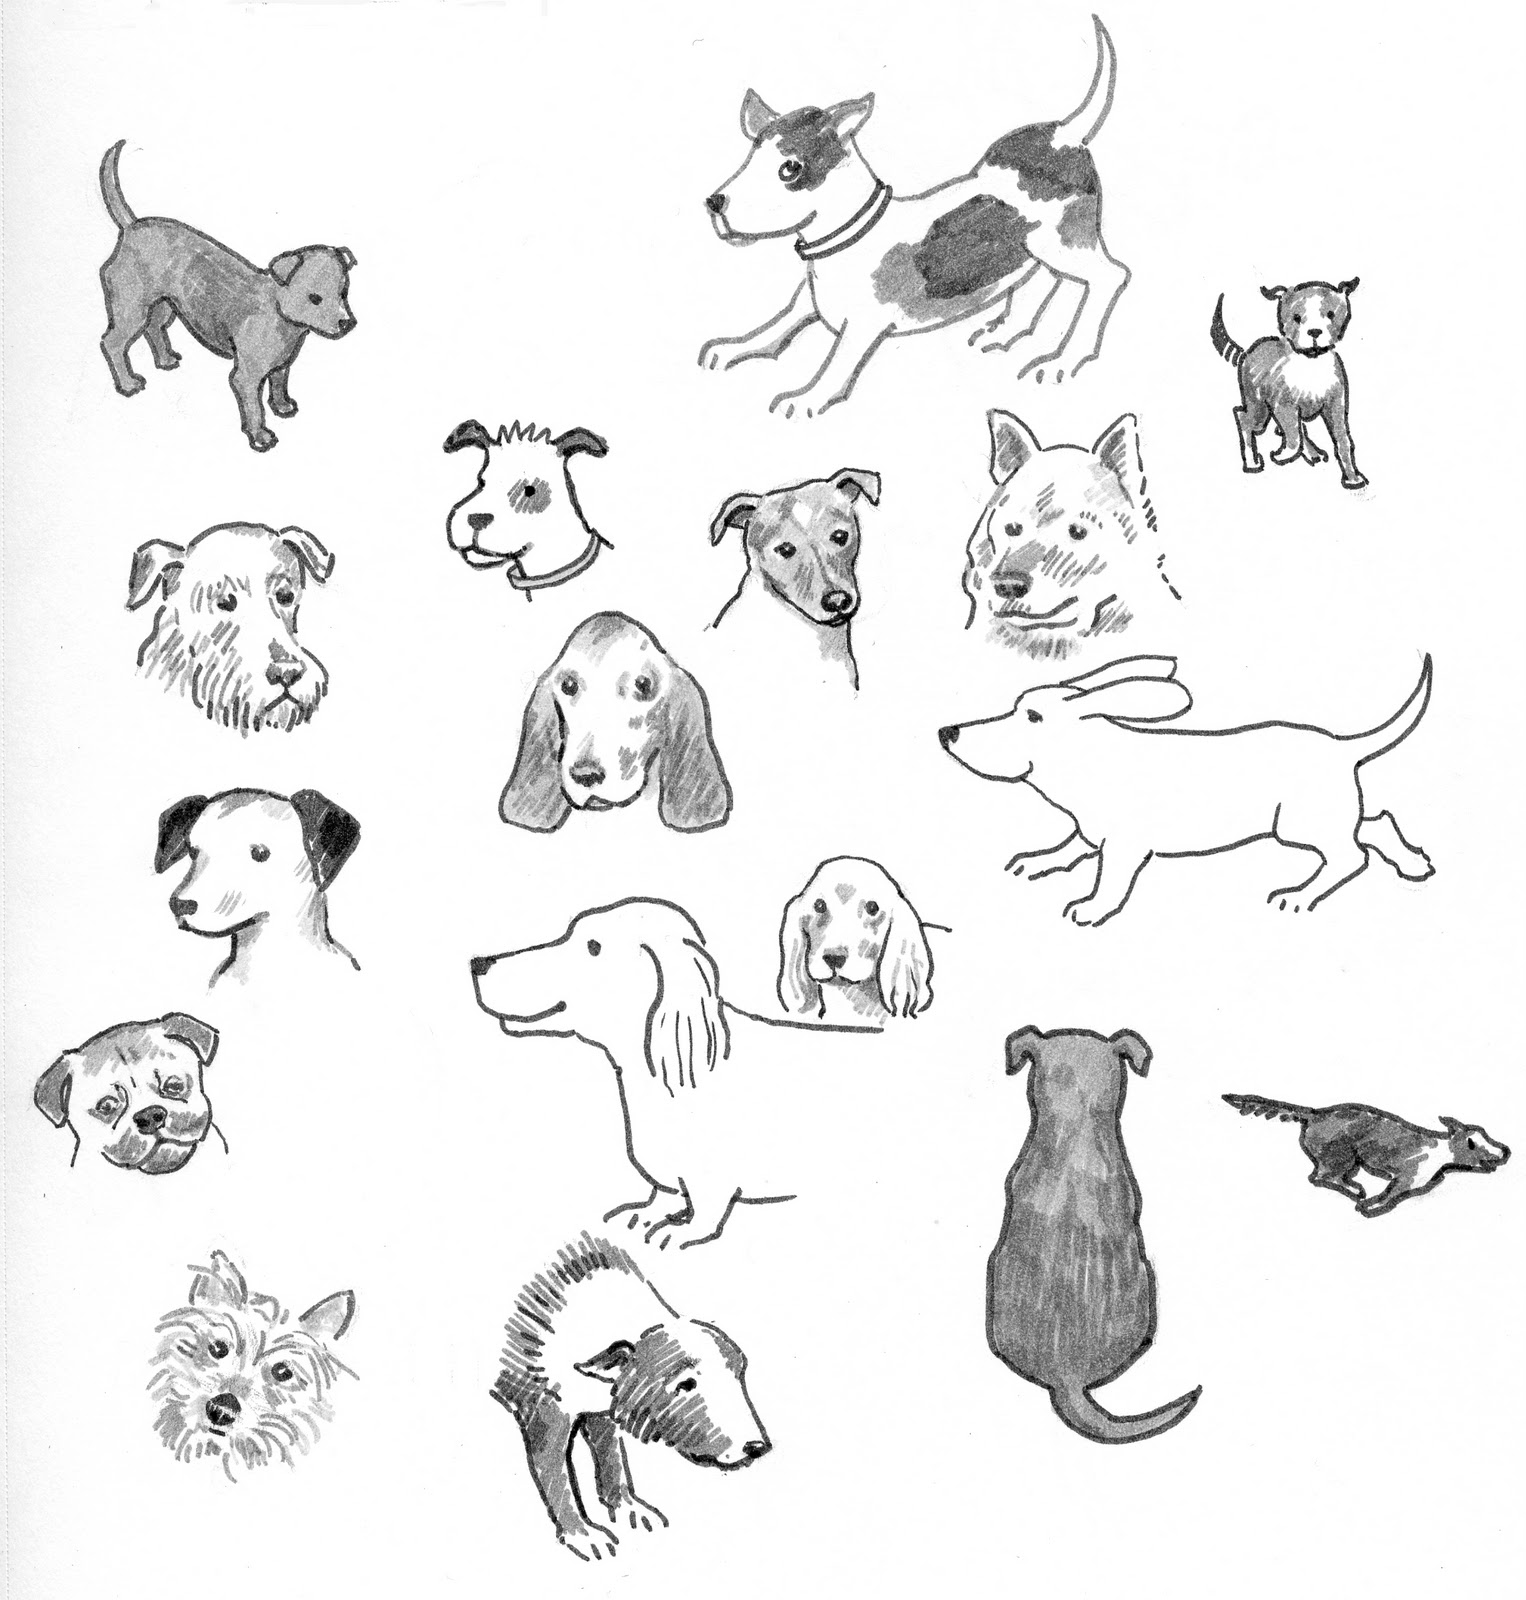 whenever i draw a dog from my imagination it ends up looking like a yellow lab why is this we had cocker spaniels and an irish setter when i was growing